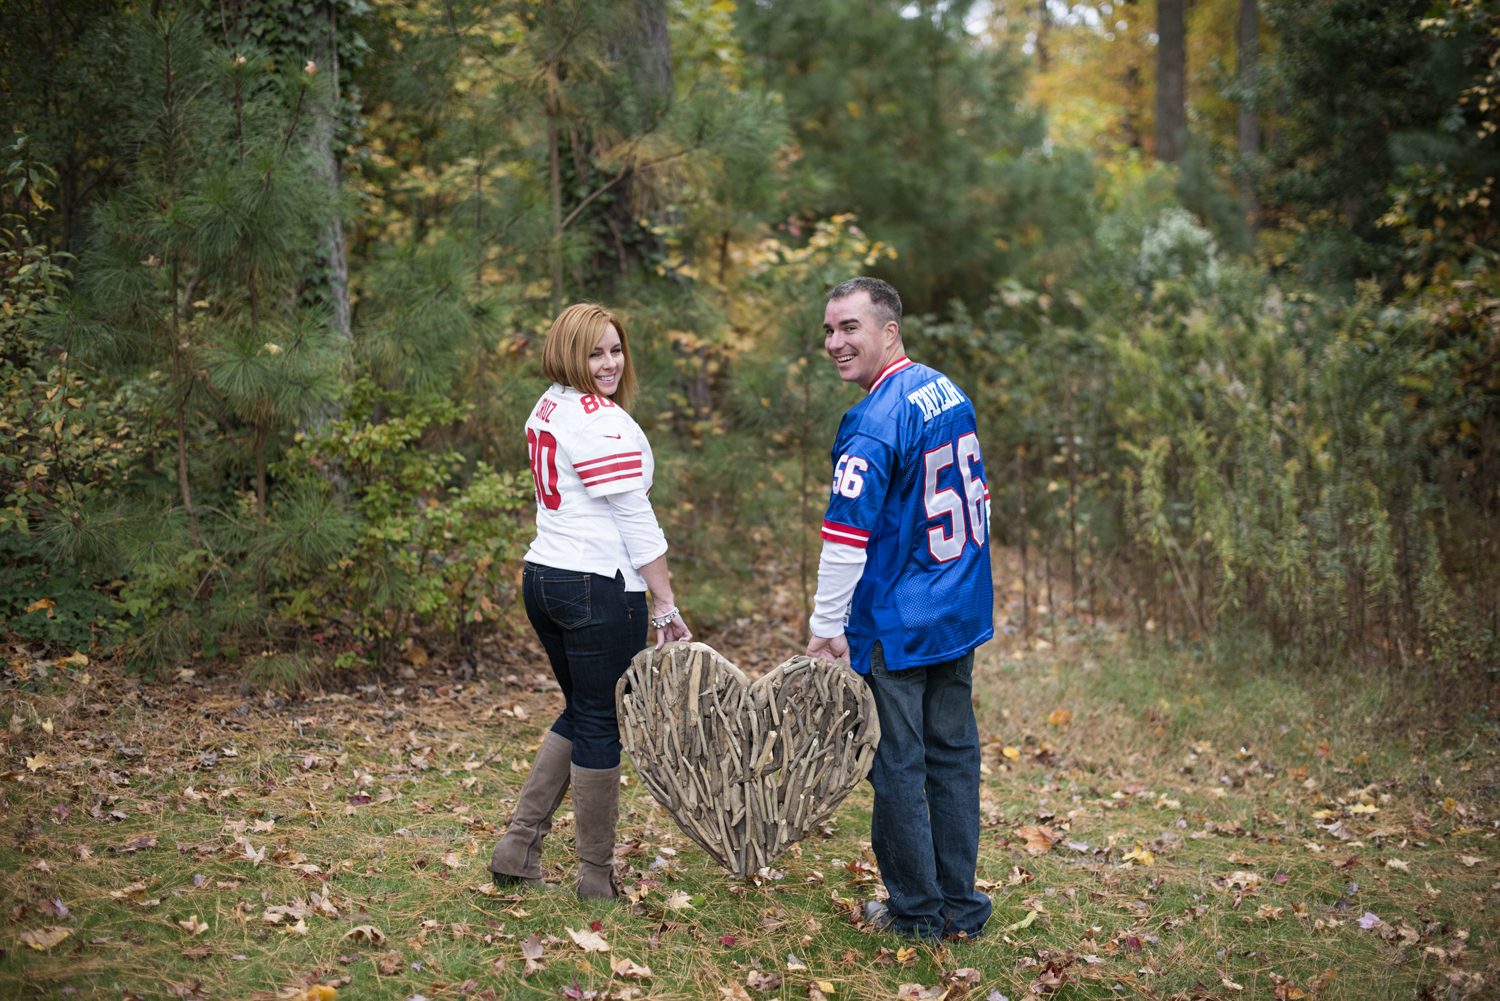 Fall engagement session with New York Giants football jerseys